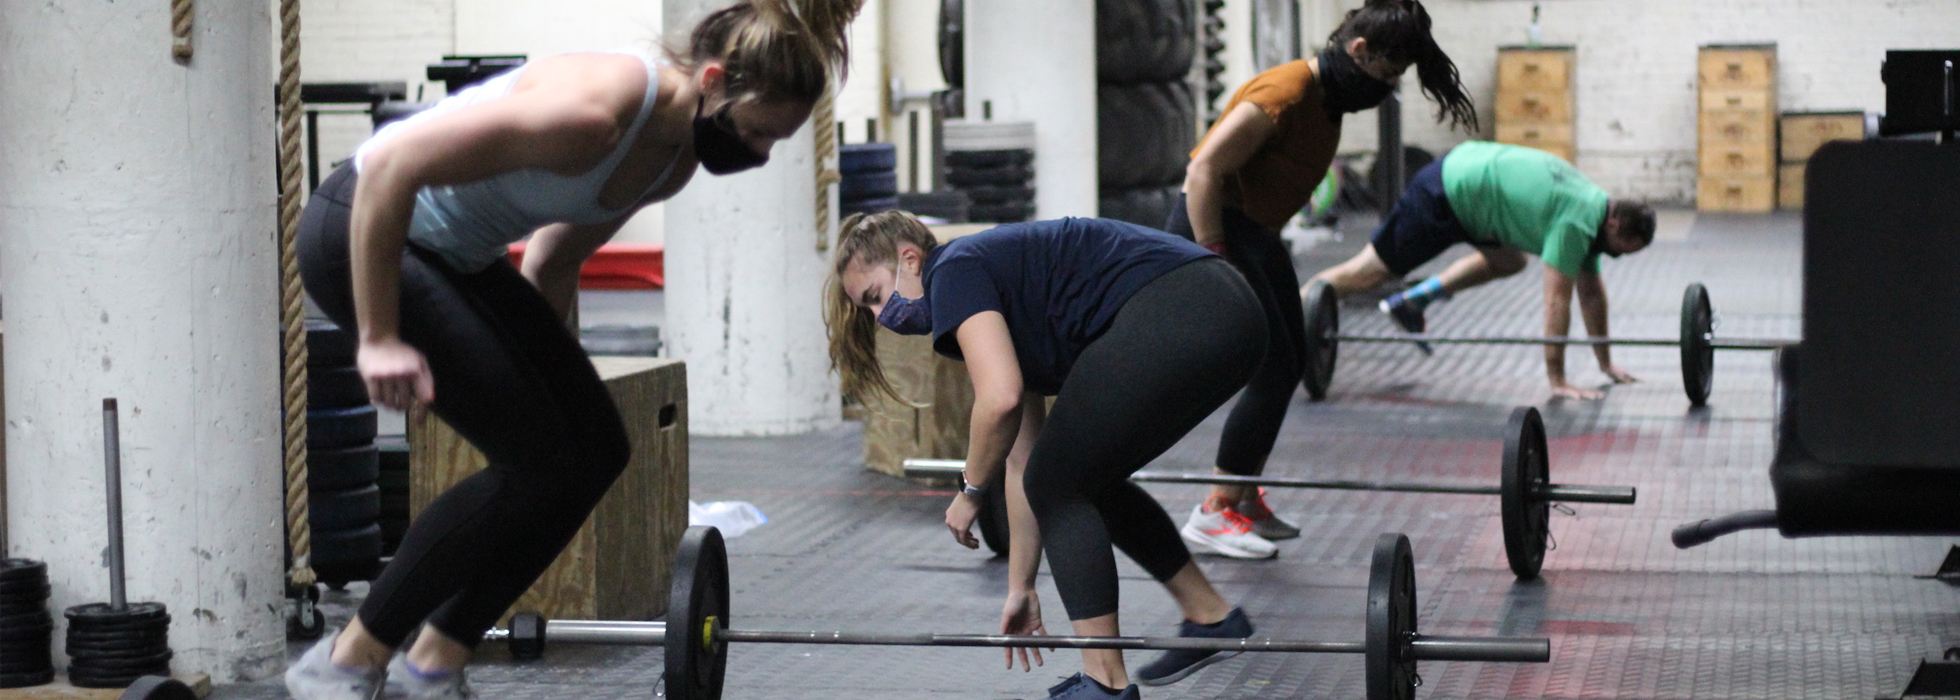 Top 5 Best Gyms To Join in Cleveland OH, Top 5 Best Gyms To Join near Ohio City OH, Top 5 Best Gyms To Join near The Flats OH, Top 5 Best Gyms To Join near Tremont OH, Top 5 Best Gyms To Join near East Cleveland OH, Top 5 Best Gyms To Join near Case Western OH, Top 5 Best Gyms To Join near Cleveland Clinic OH, Top 5 Best Gyms To Join near CSU (Cleveland State University) OH, Top 5 Best Gyms To Join near Lakewood OH